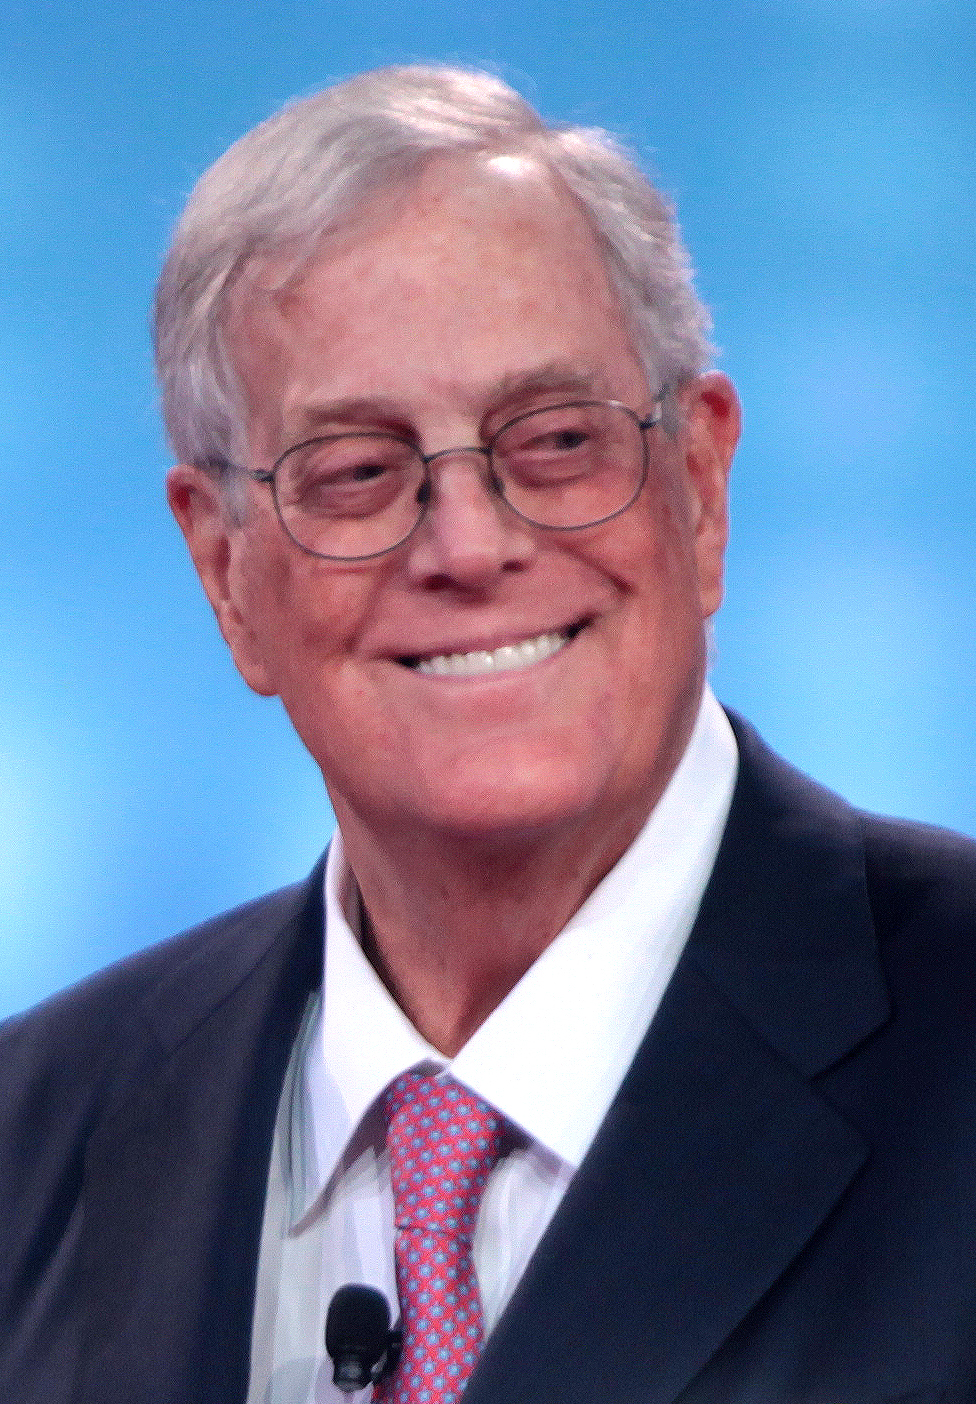 David koch wikipedia for Koch industries